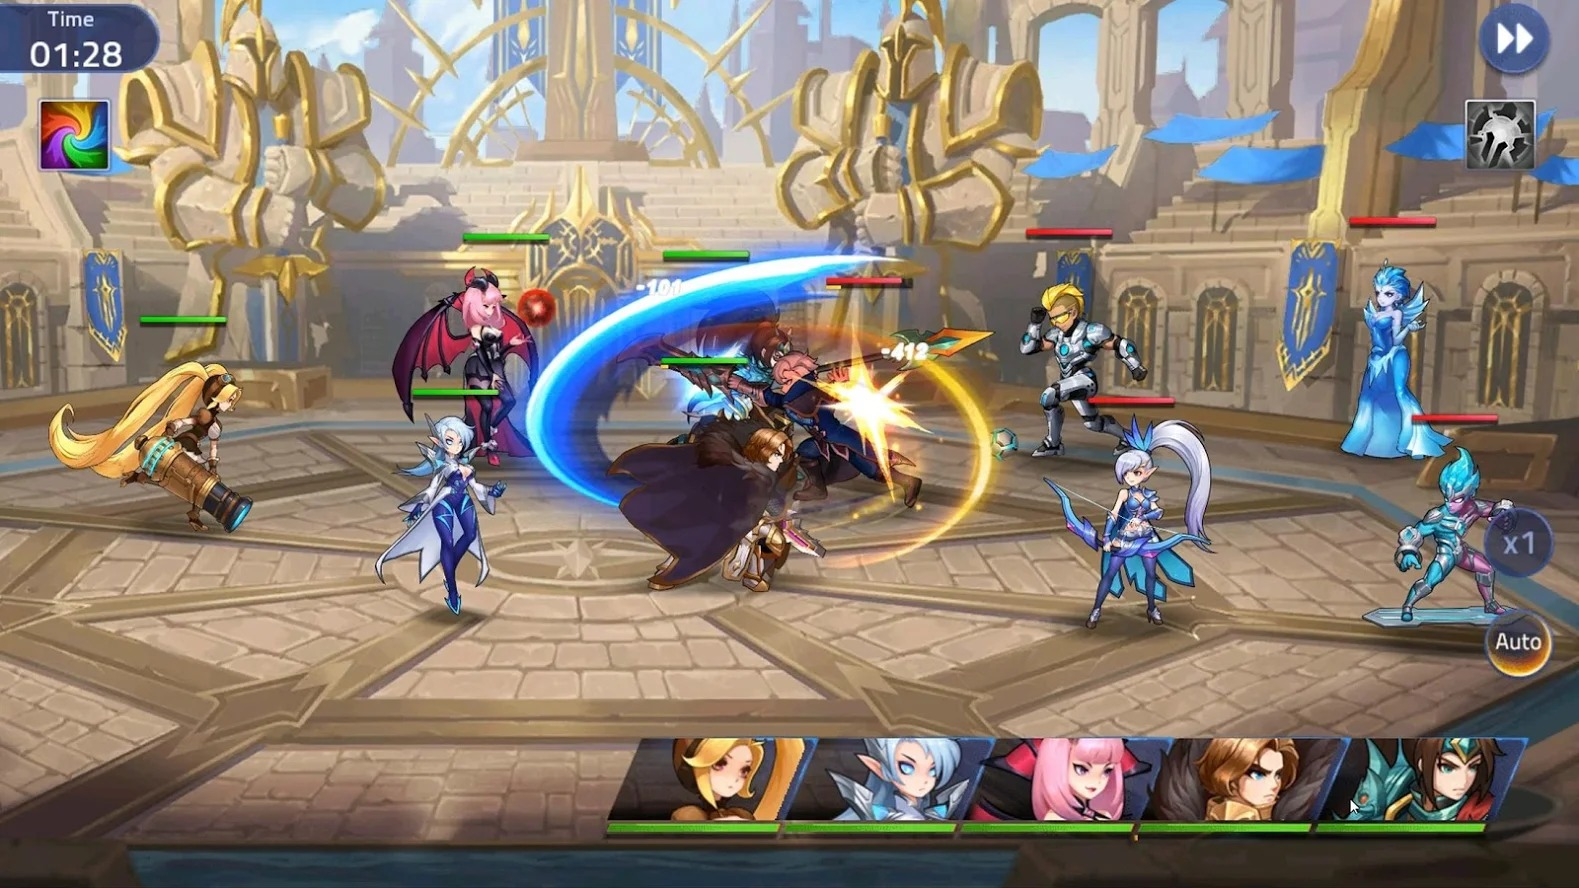 Mobile Legends Adventure graphics